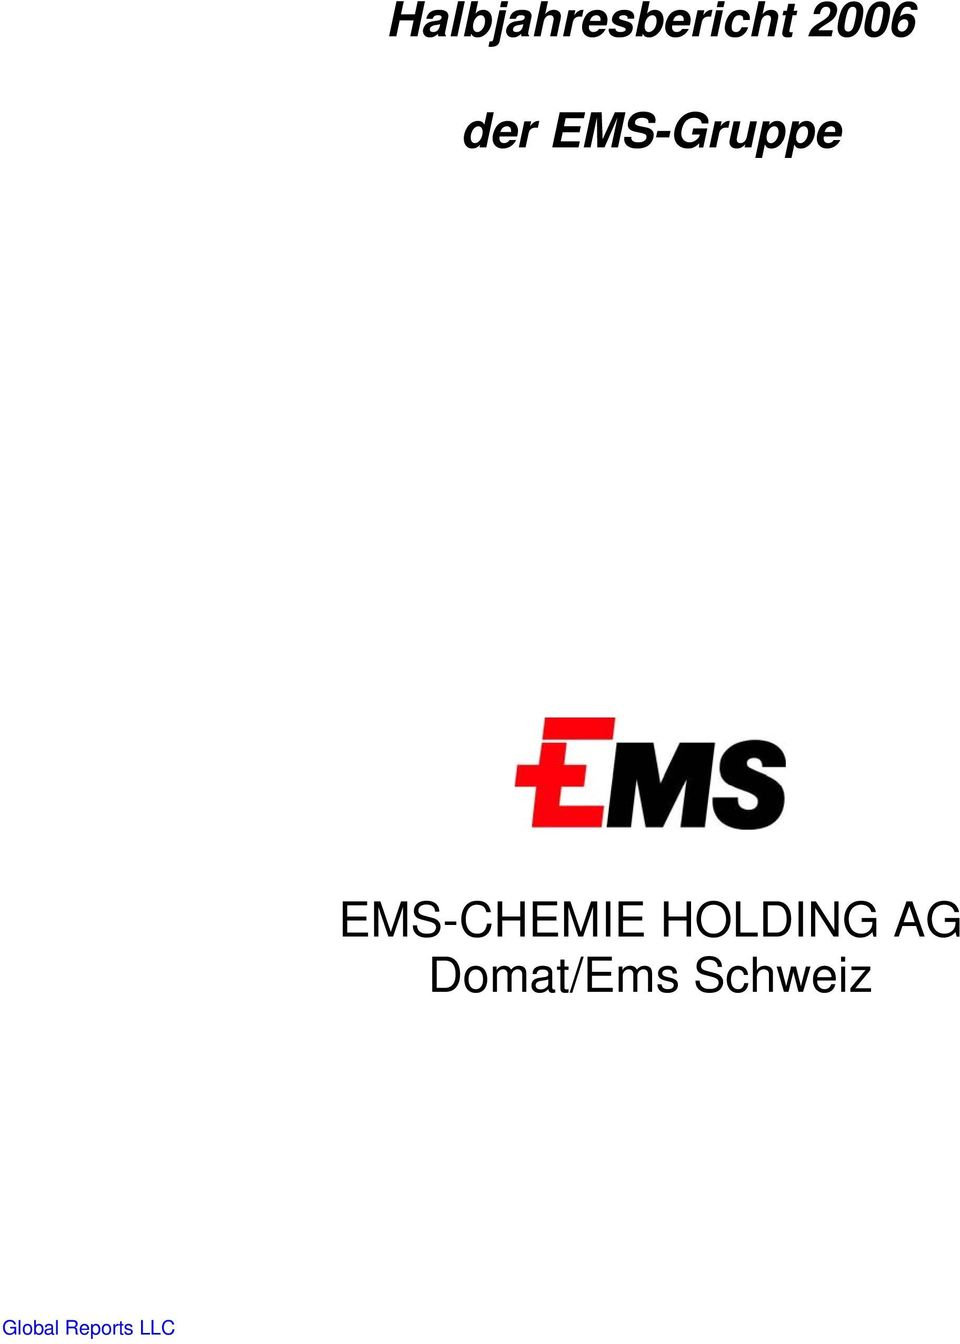 EMS-CHEMIE HOLDING